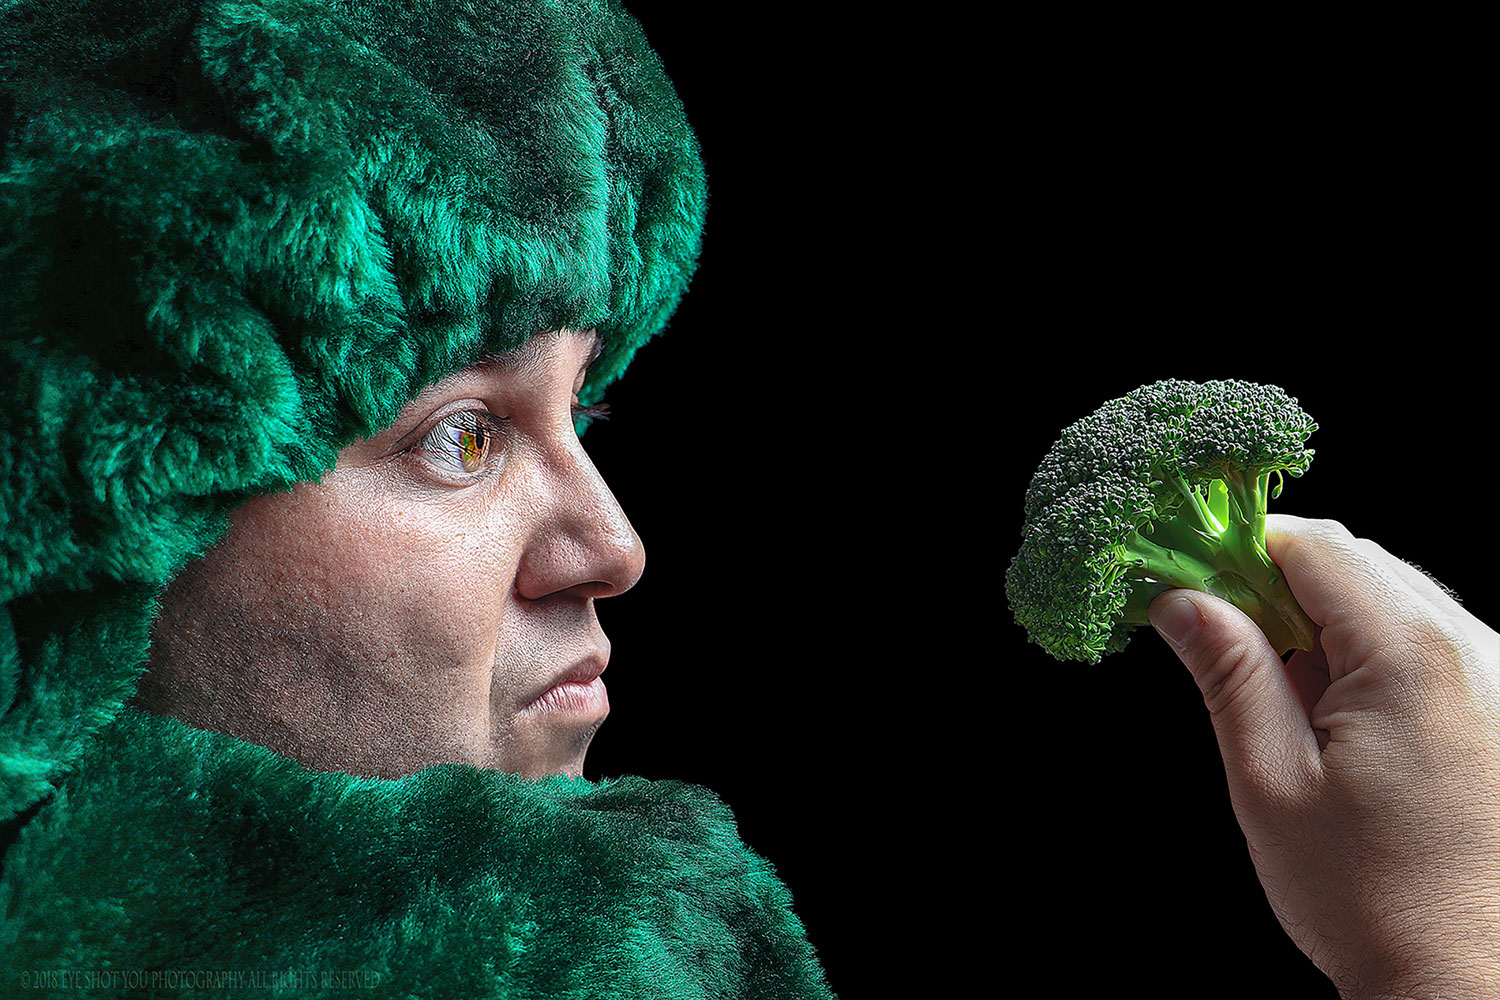 Man Vs. Broccoli